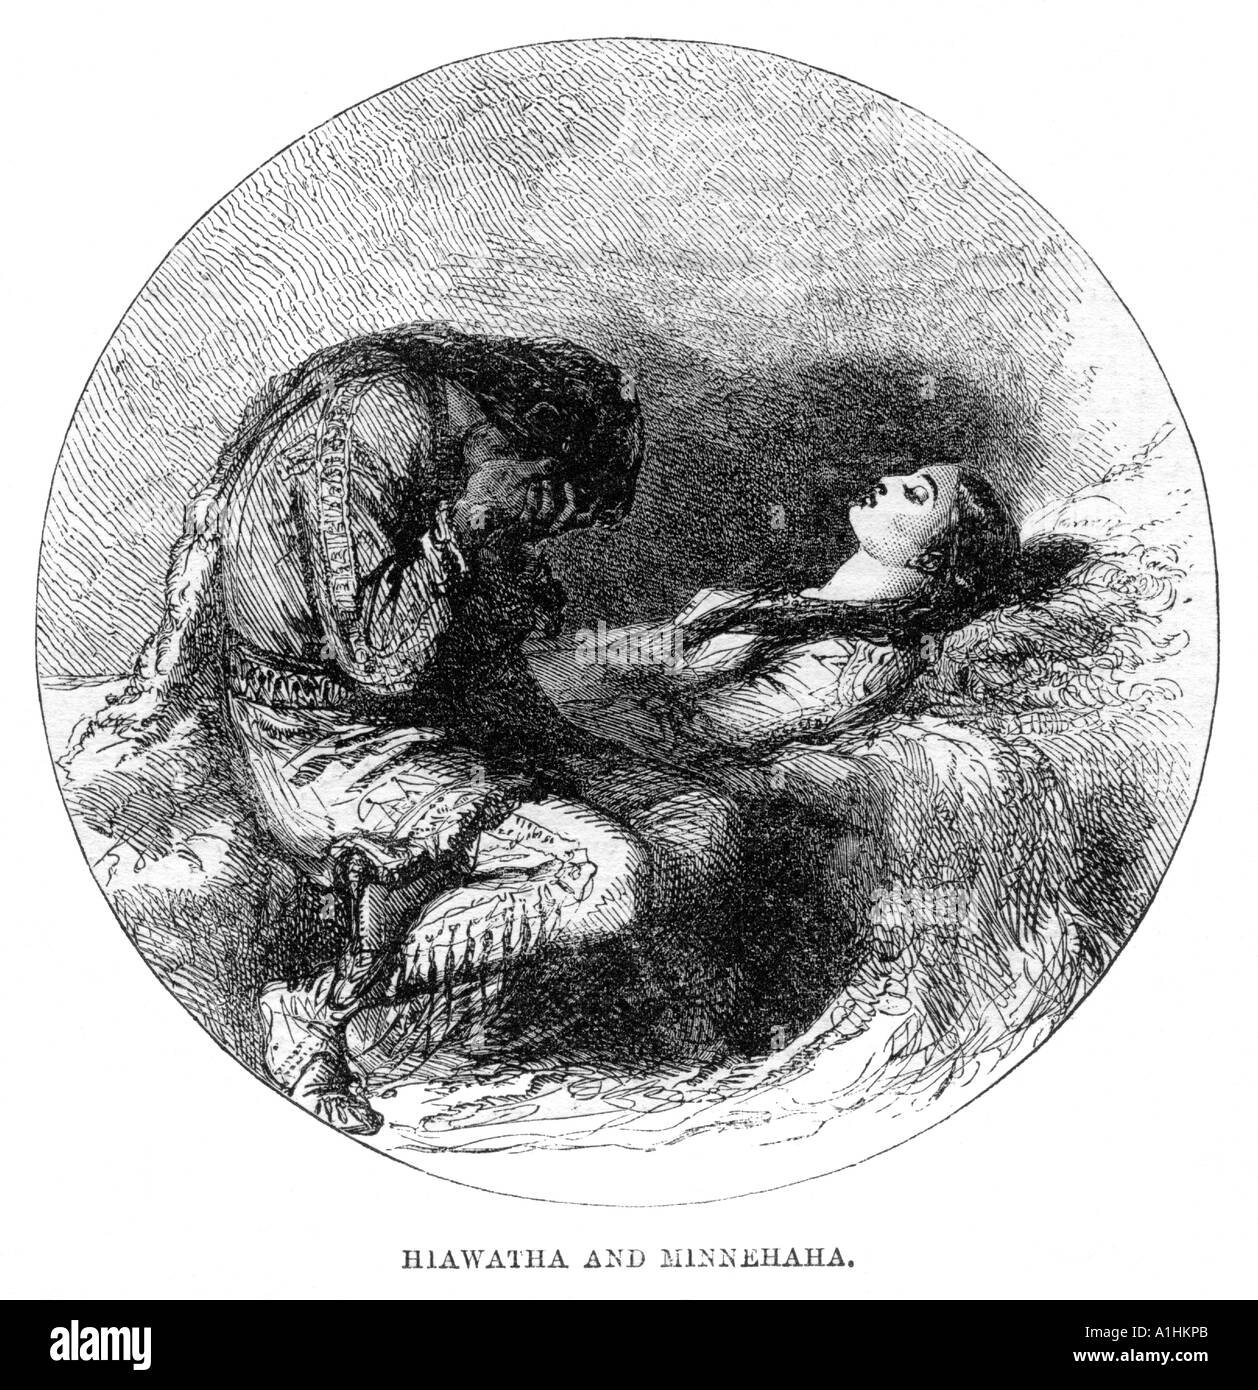 hiawatha and minnehaha poem by henry wadsworth longfellow  hiawatha and minnehaha poem by henry wadsworth longfellow 1807 1882 illustrated london news 24 1859